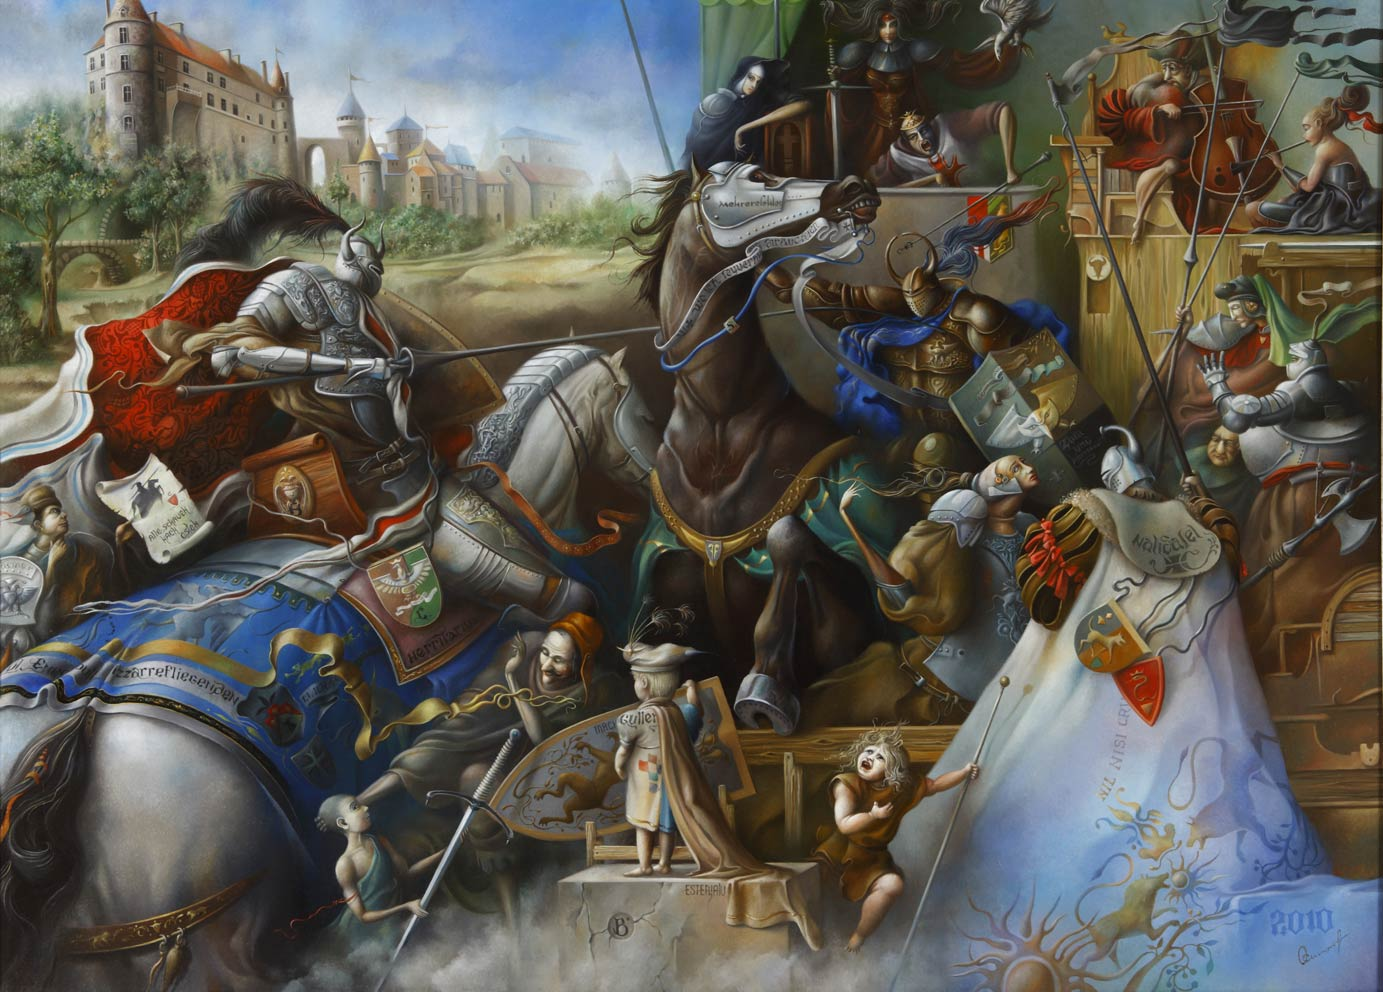 Joust. The end of August.(Augustus's end), 100x140 cm, oil on canvas, 2010.